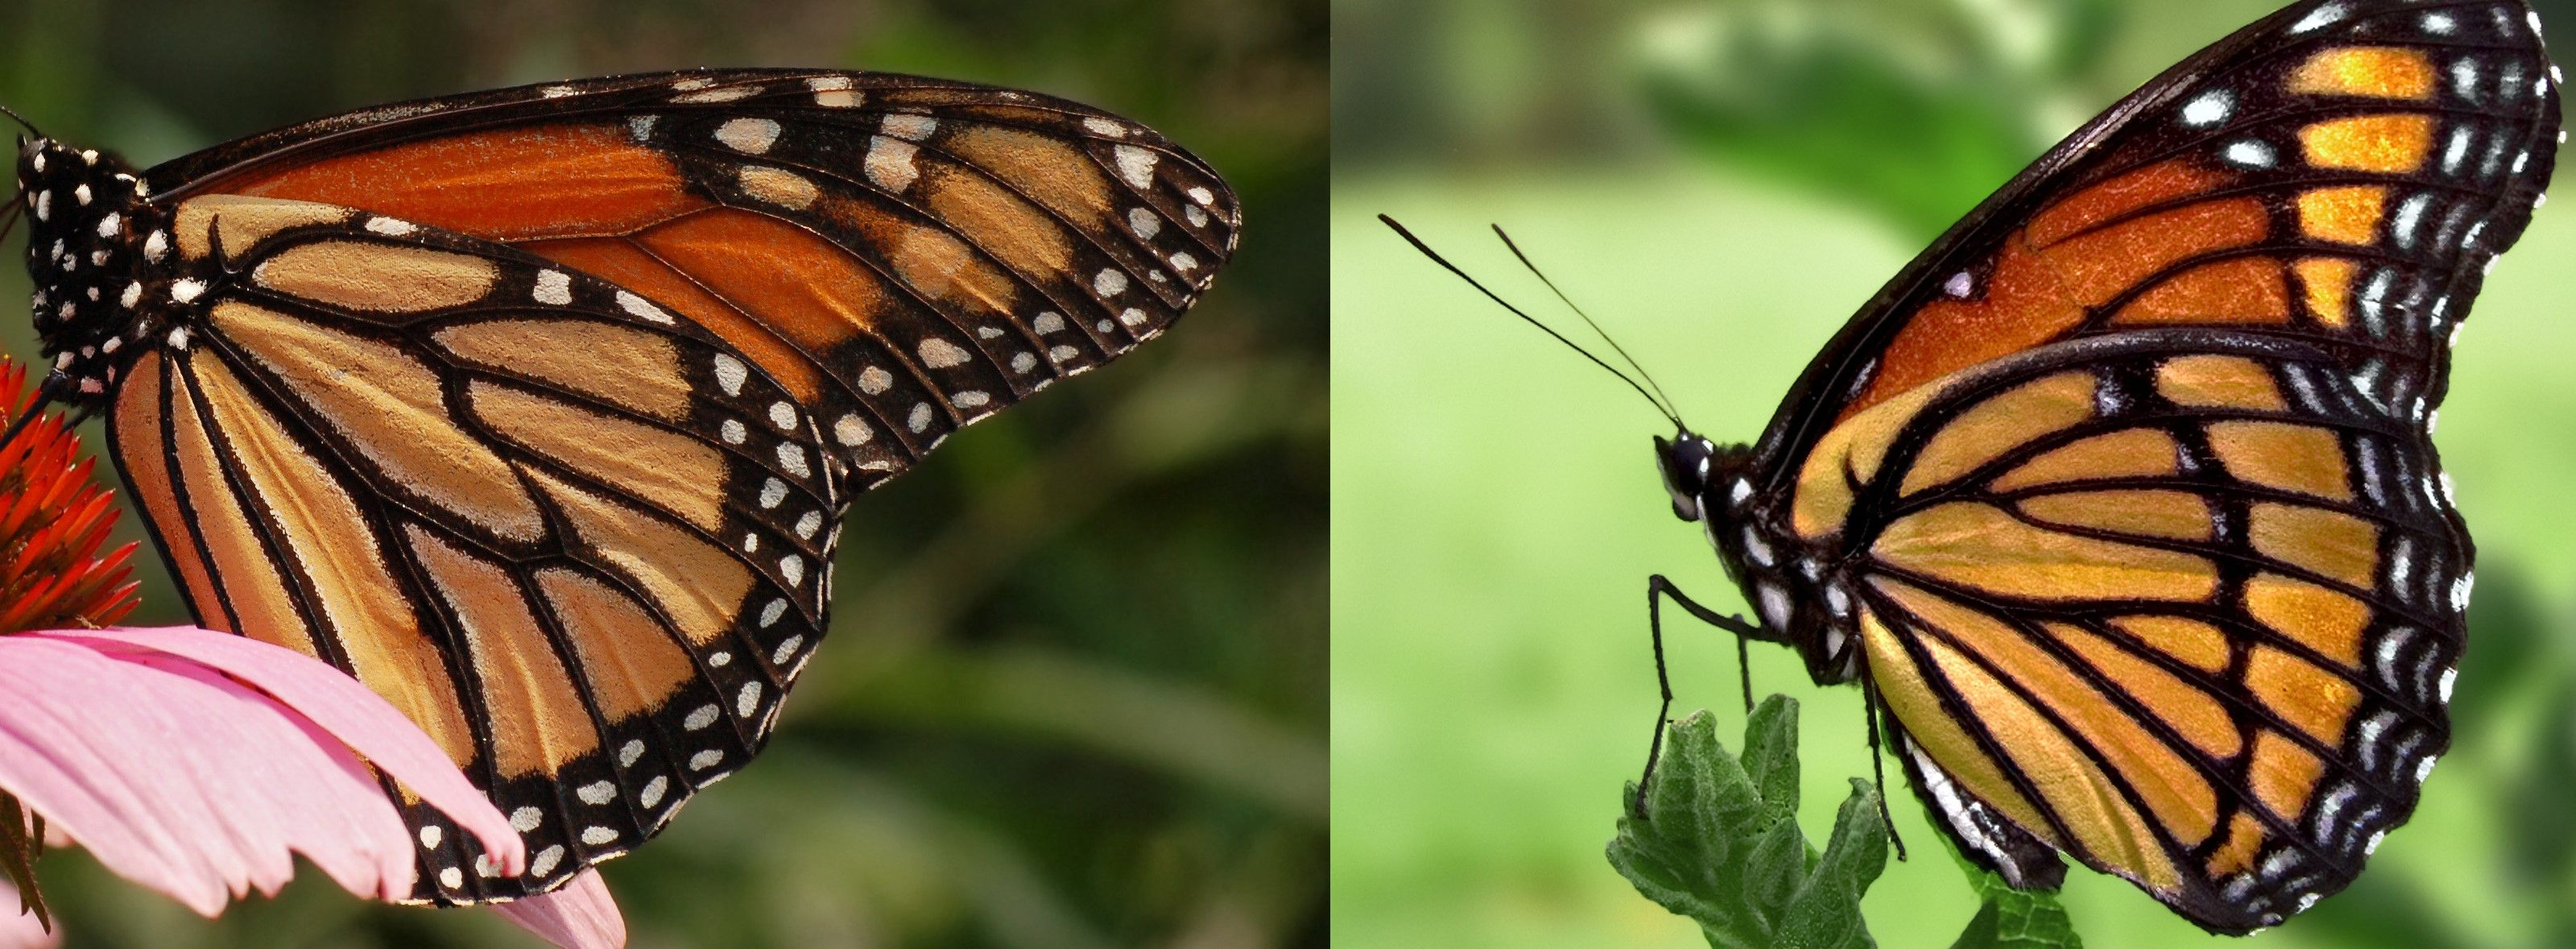 Camouflage Vs Mimicry Which One Is This